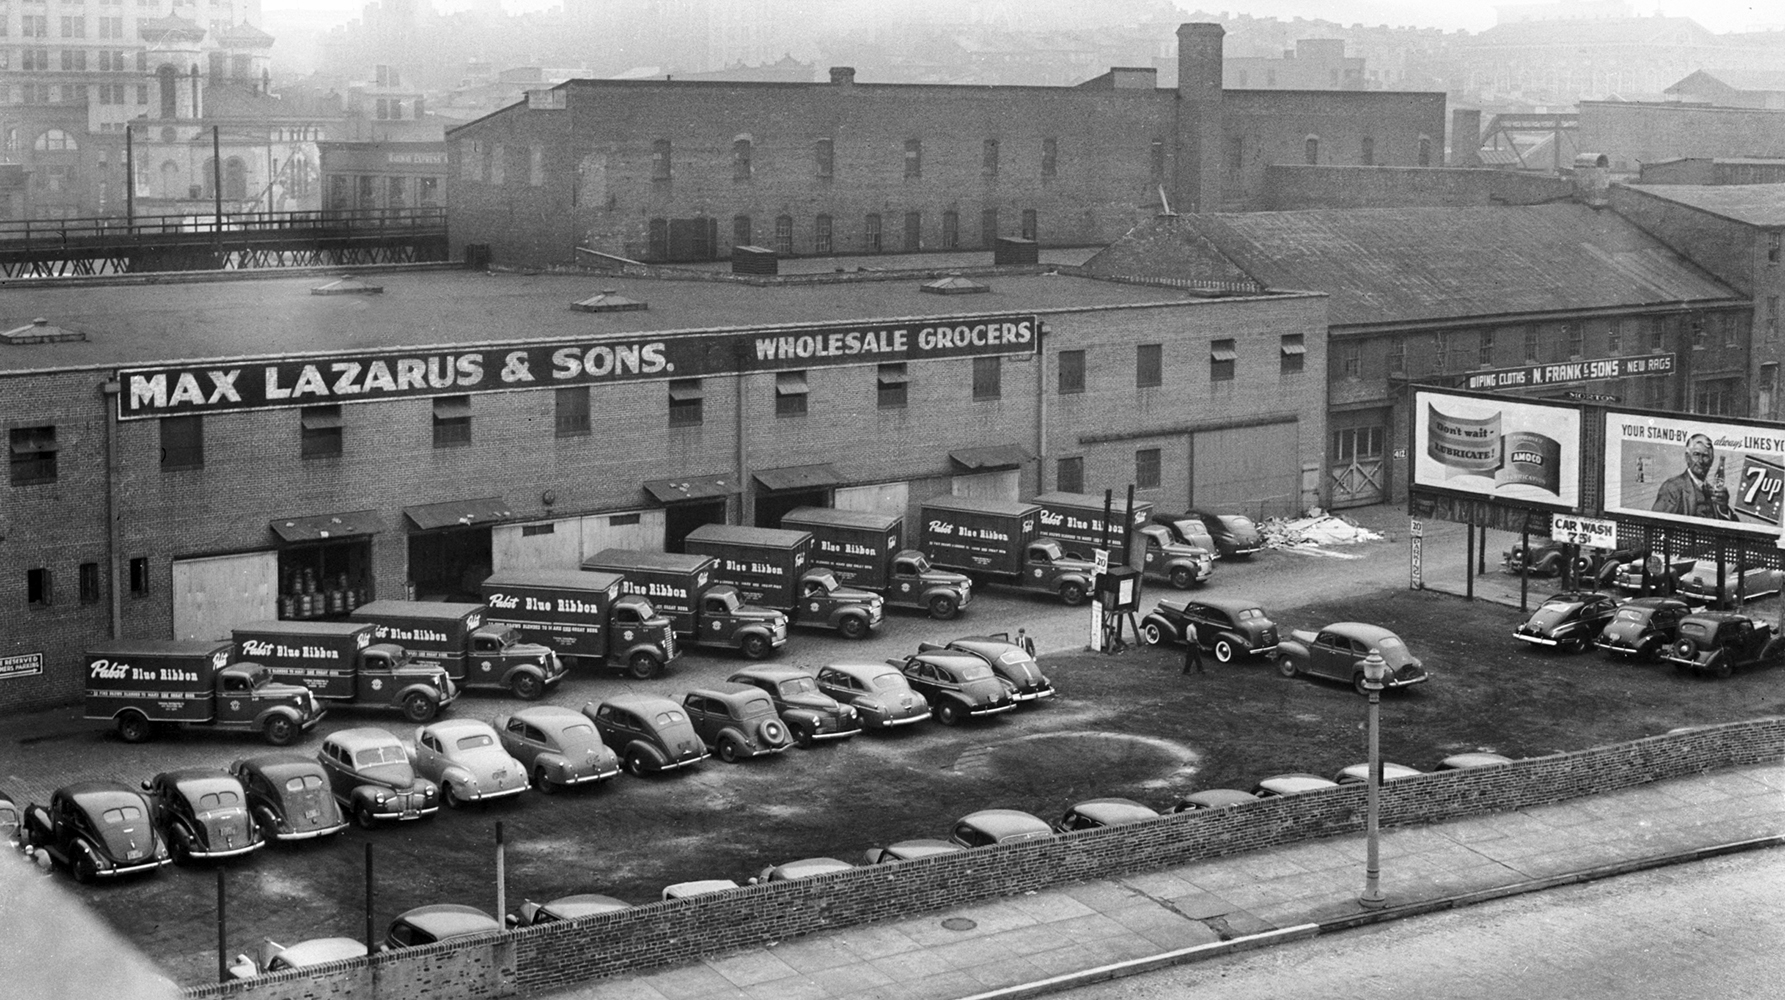 Max Lazarus and Sons warehouse on Holliday Street